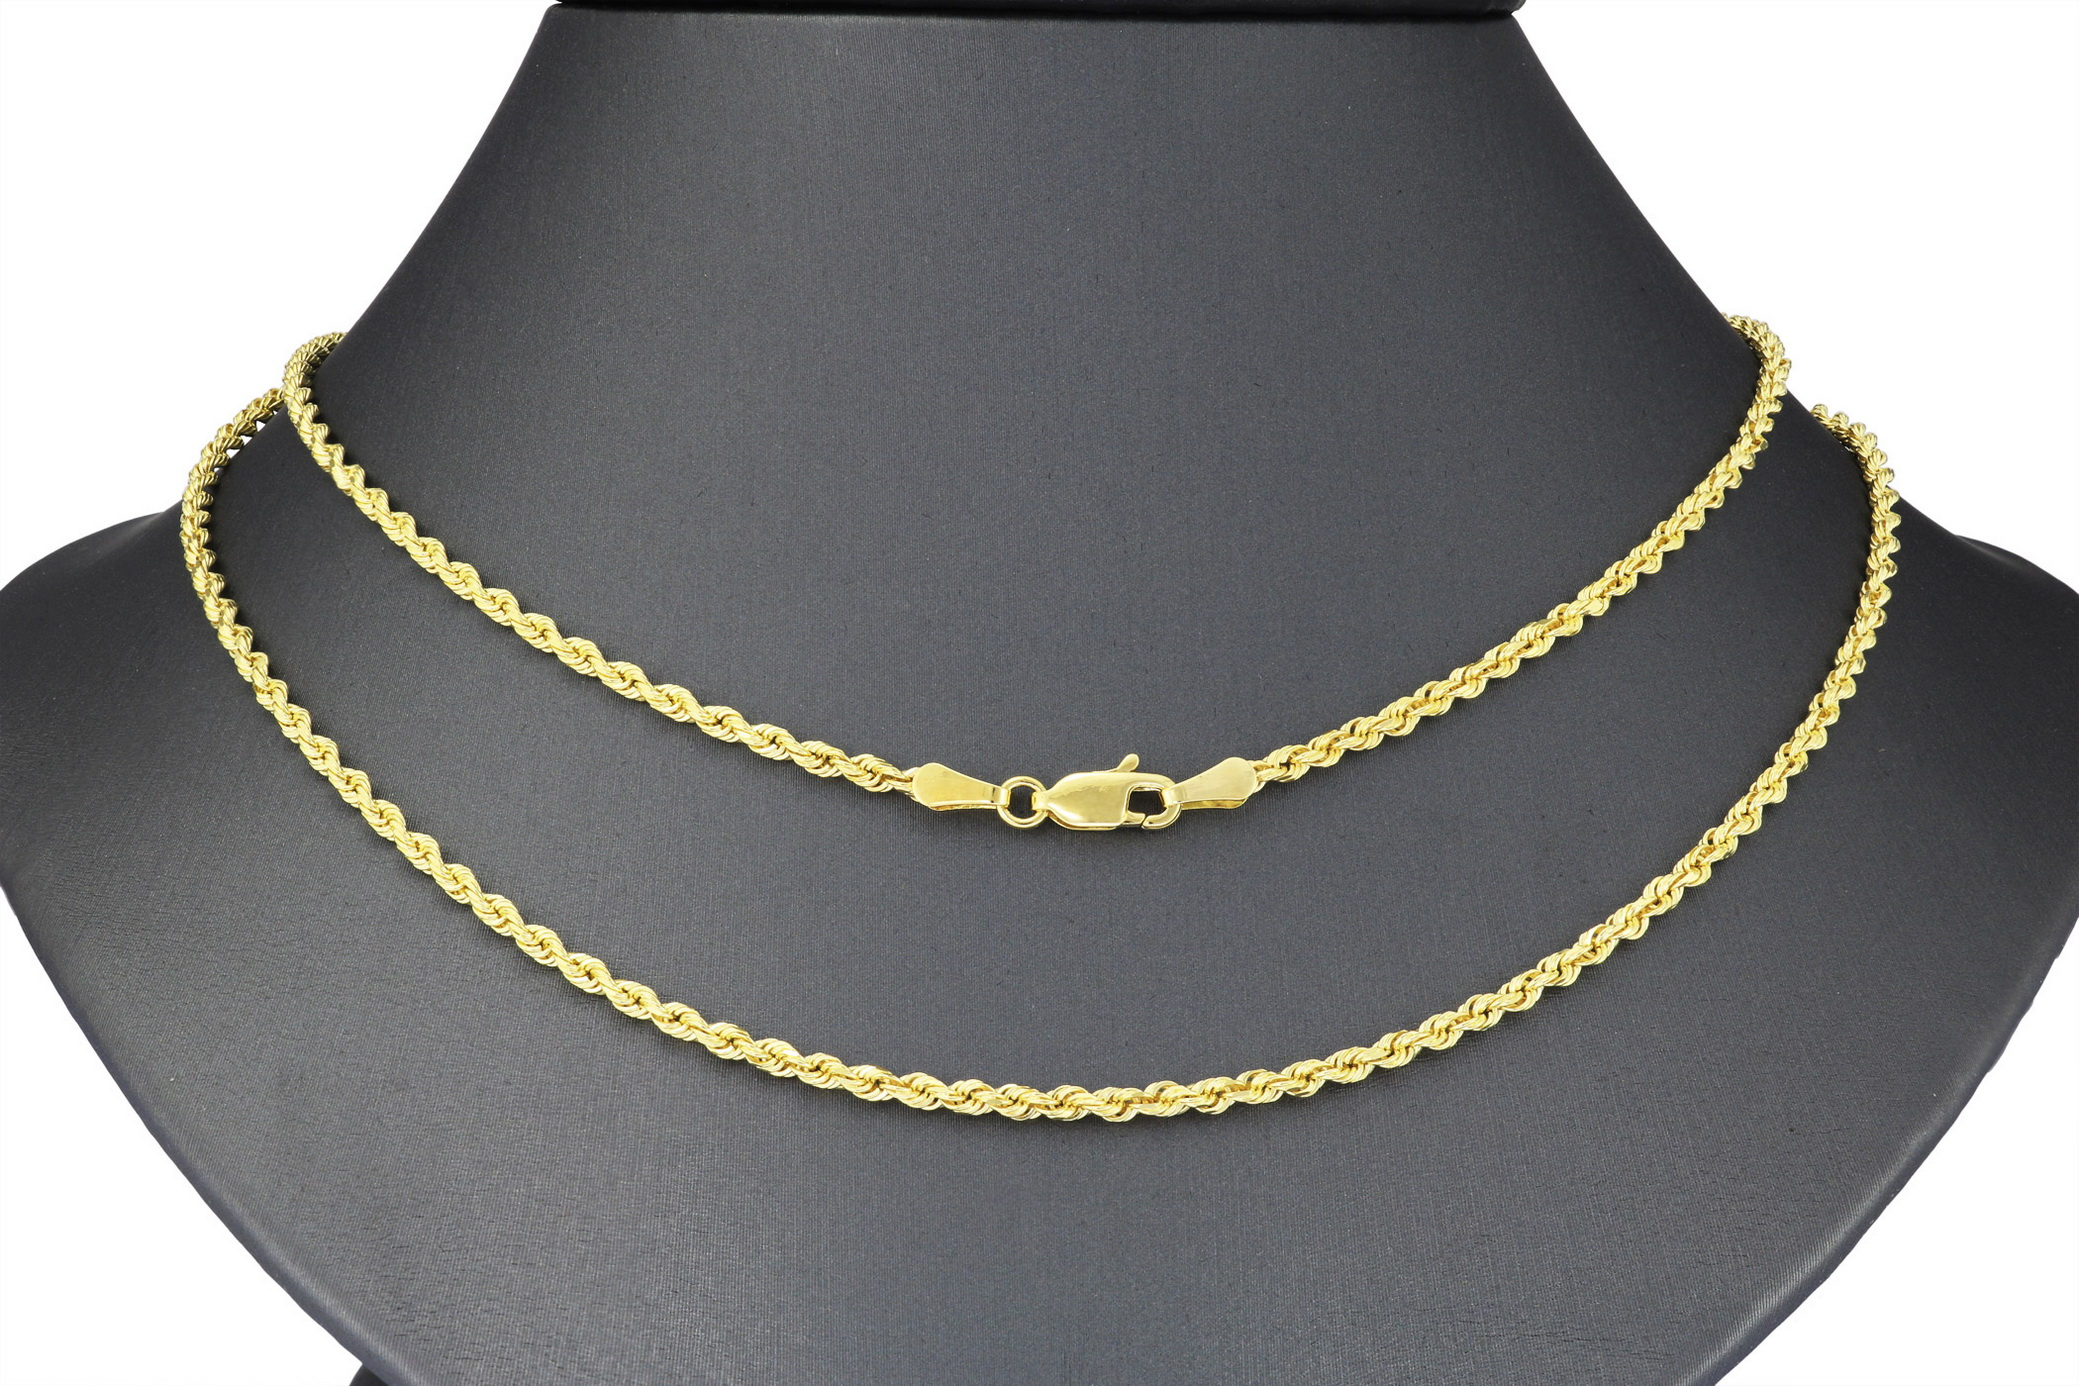 Solid-14K-Yellow-Gold-2-5mm-Mens-Women-Diamond-Cut-Rope-Chain-Necklace-16-034-30-034 thumbnail 23